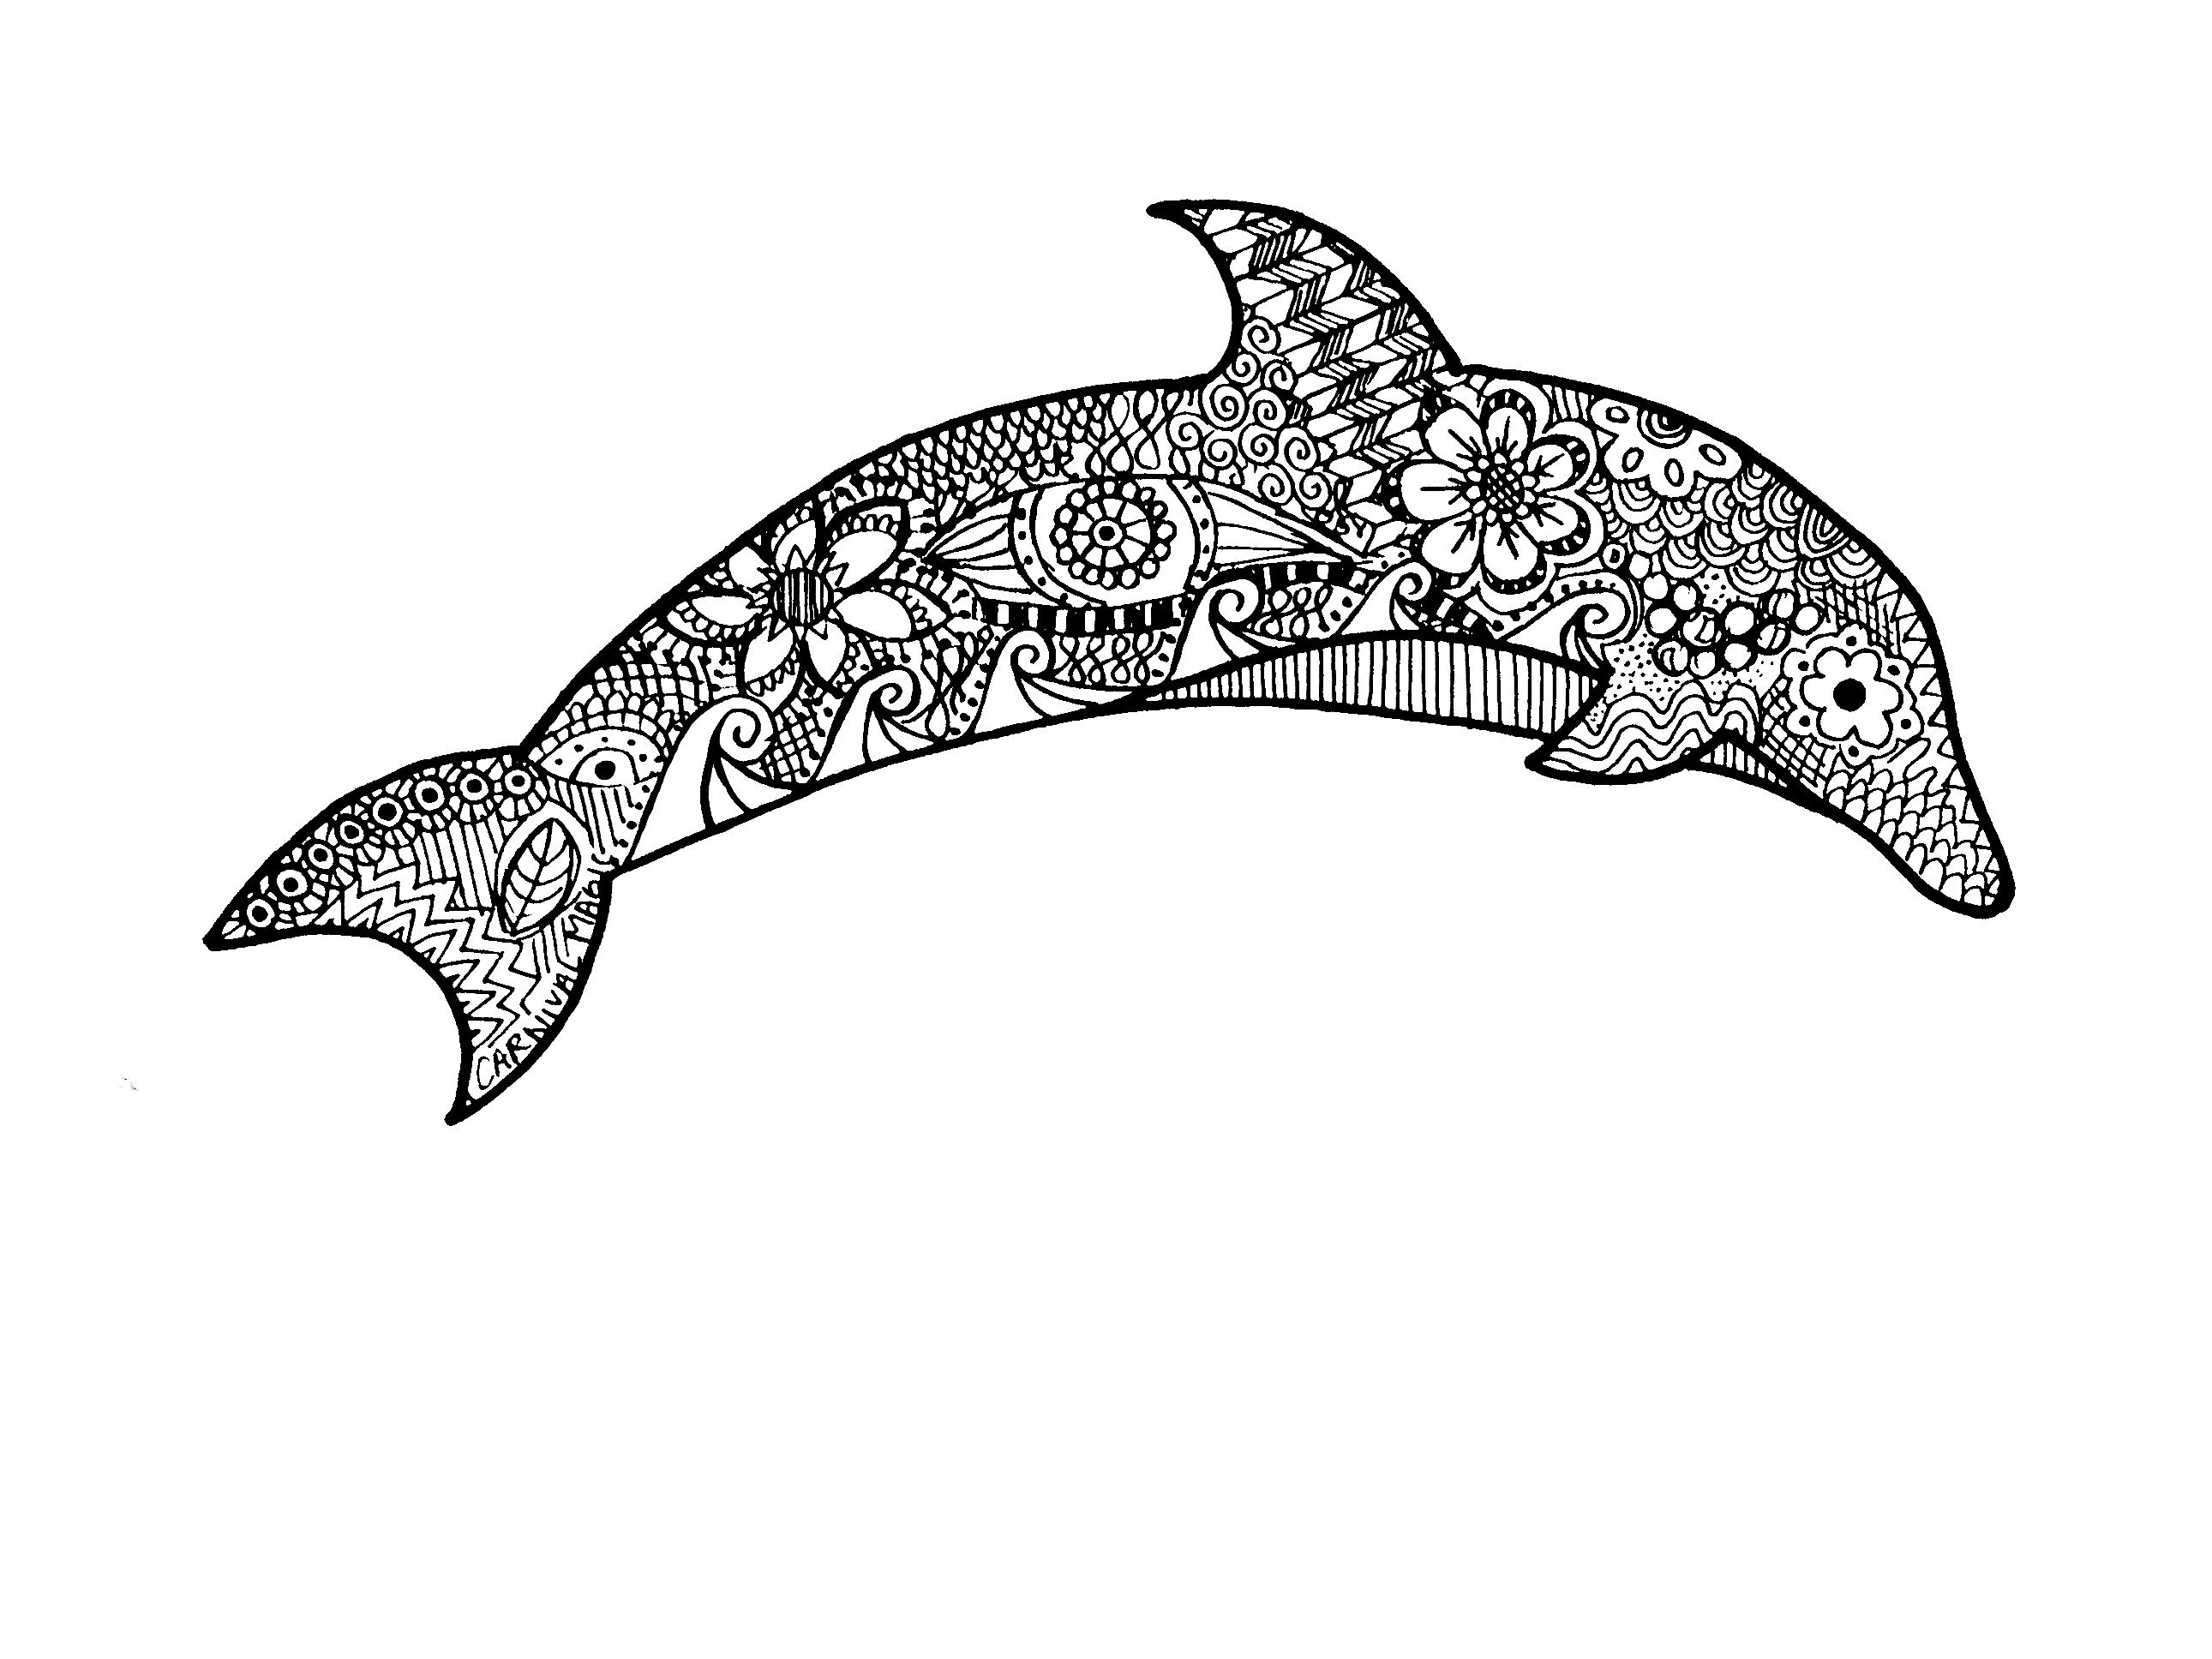 falcon coloring page additionally 1226fad237a1a044578c63b5a08bfe99 additionally  furthermore  as well fish coloring pages illustration contour 35455501 moreover  in addition  further gieogo8id furthermore coloriage baleine zen coloring whale together with kawaii narwhal paisleys watermark also . on printable abstract coloring pages sea life